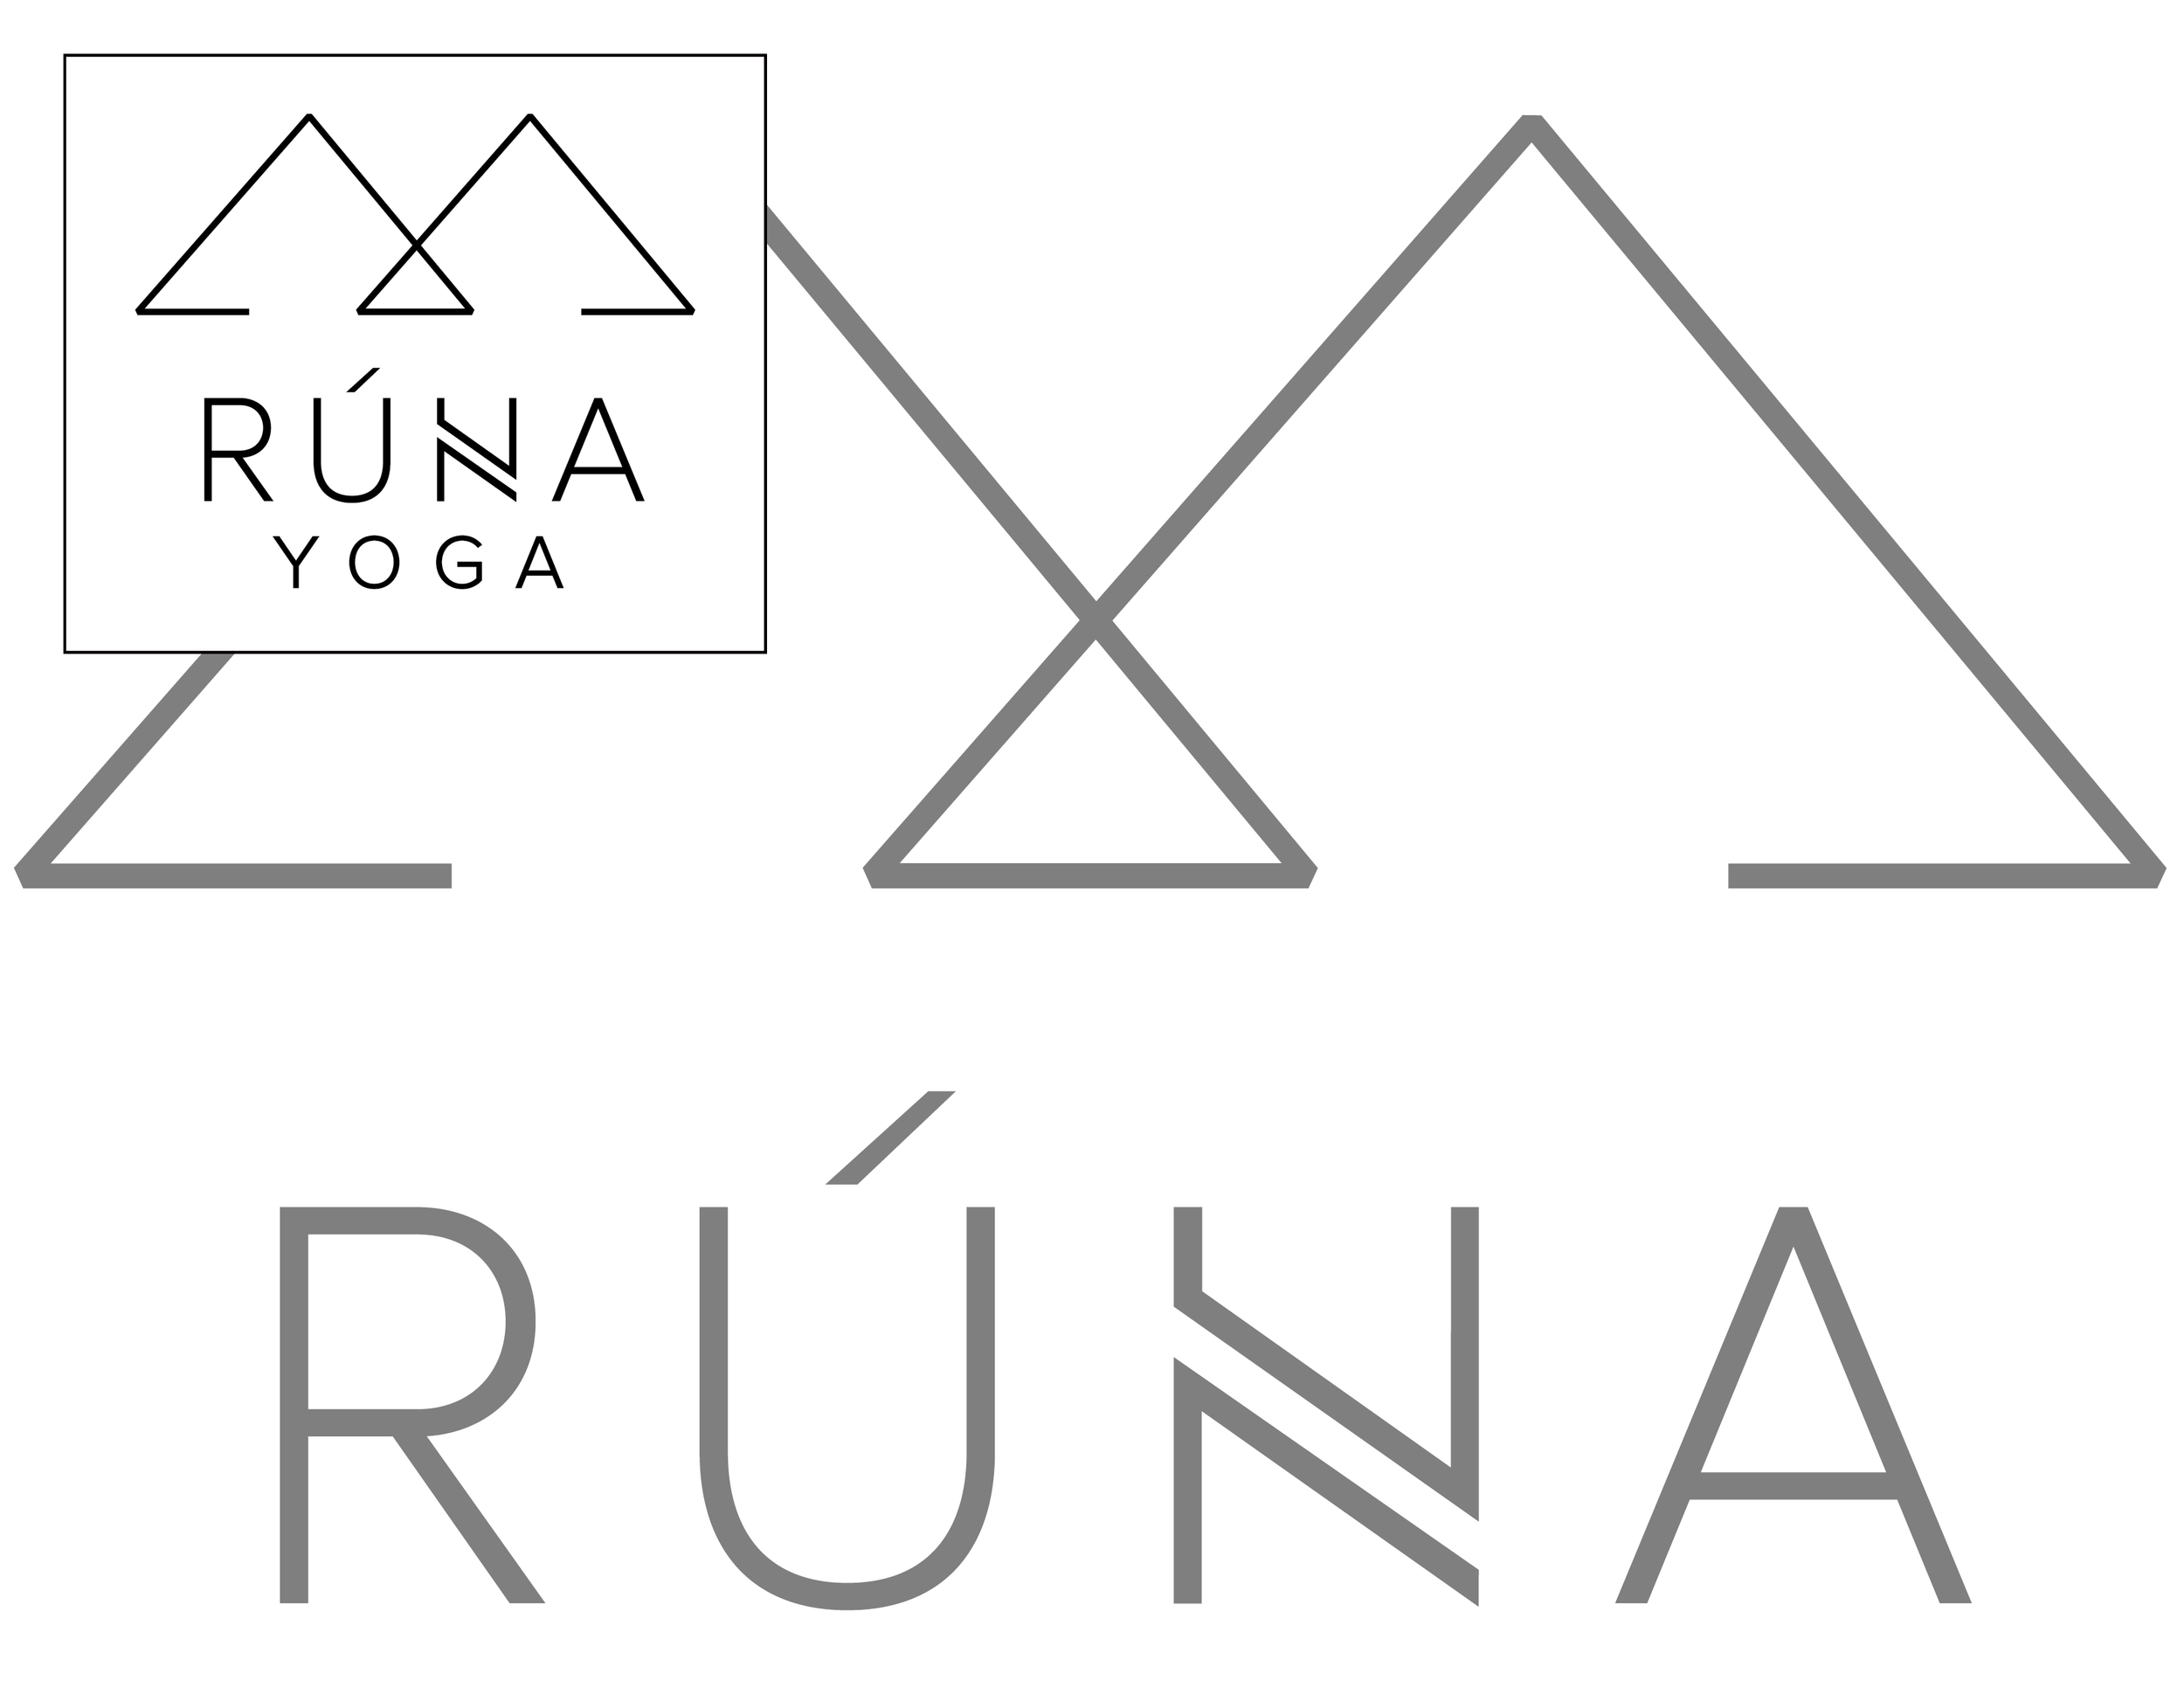 runa yoga ERIKA WAS HERE DESIGN logo  design spread 2017.png